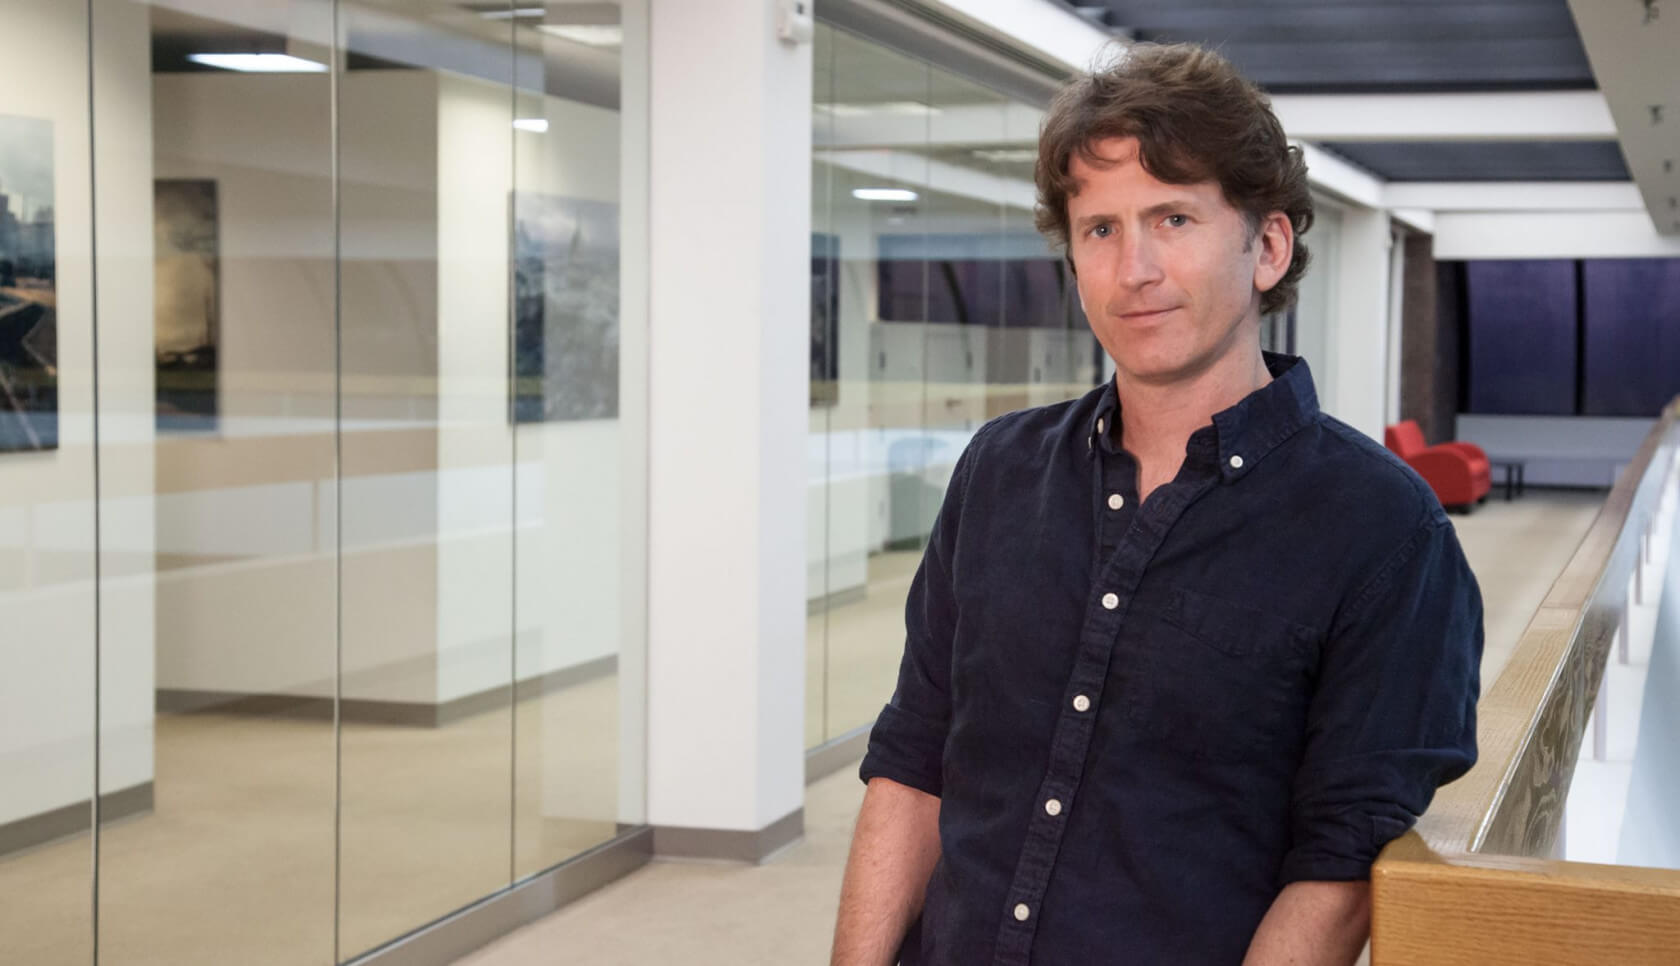 The Elder Scrolls VI is so secret Todd Howard won't even throw his